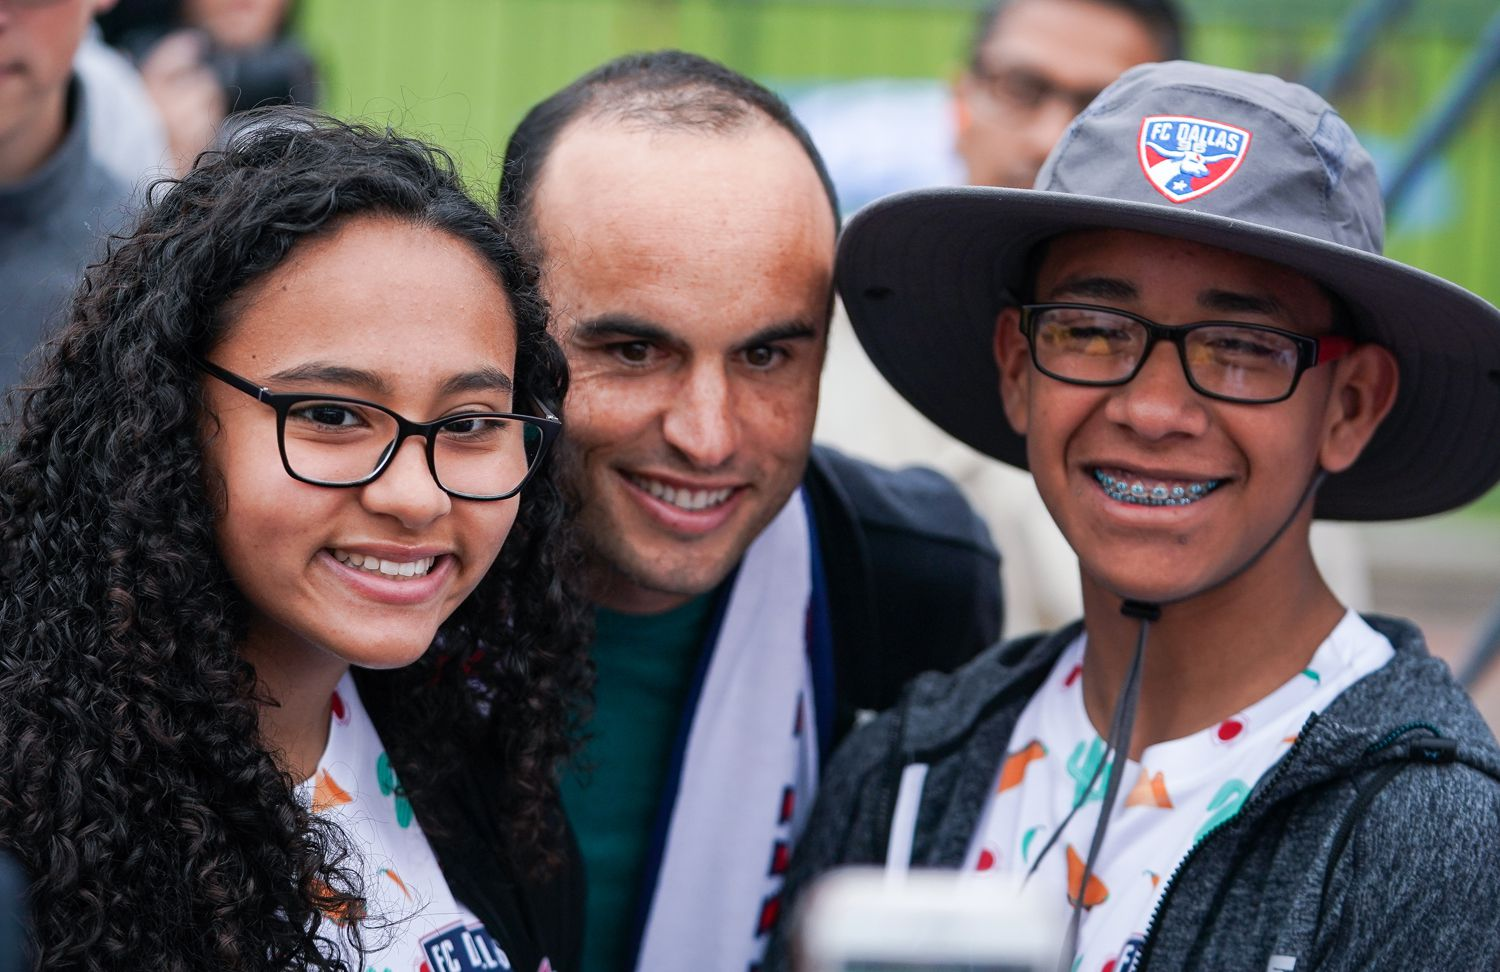 Landon Donovan poses with fans at the FC Dallas game against Colorado Rapids. (3-23-19)